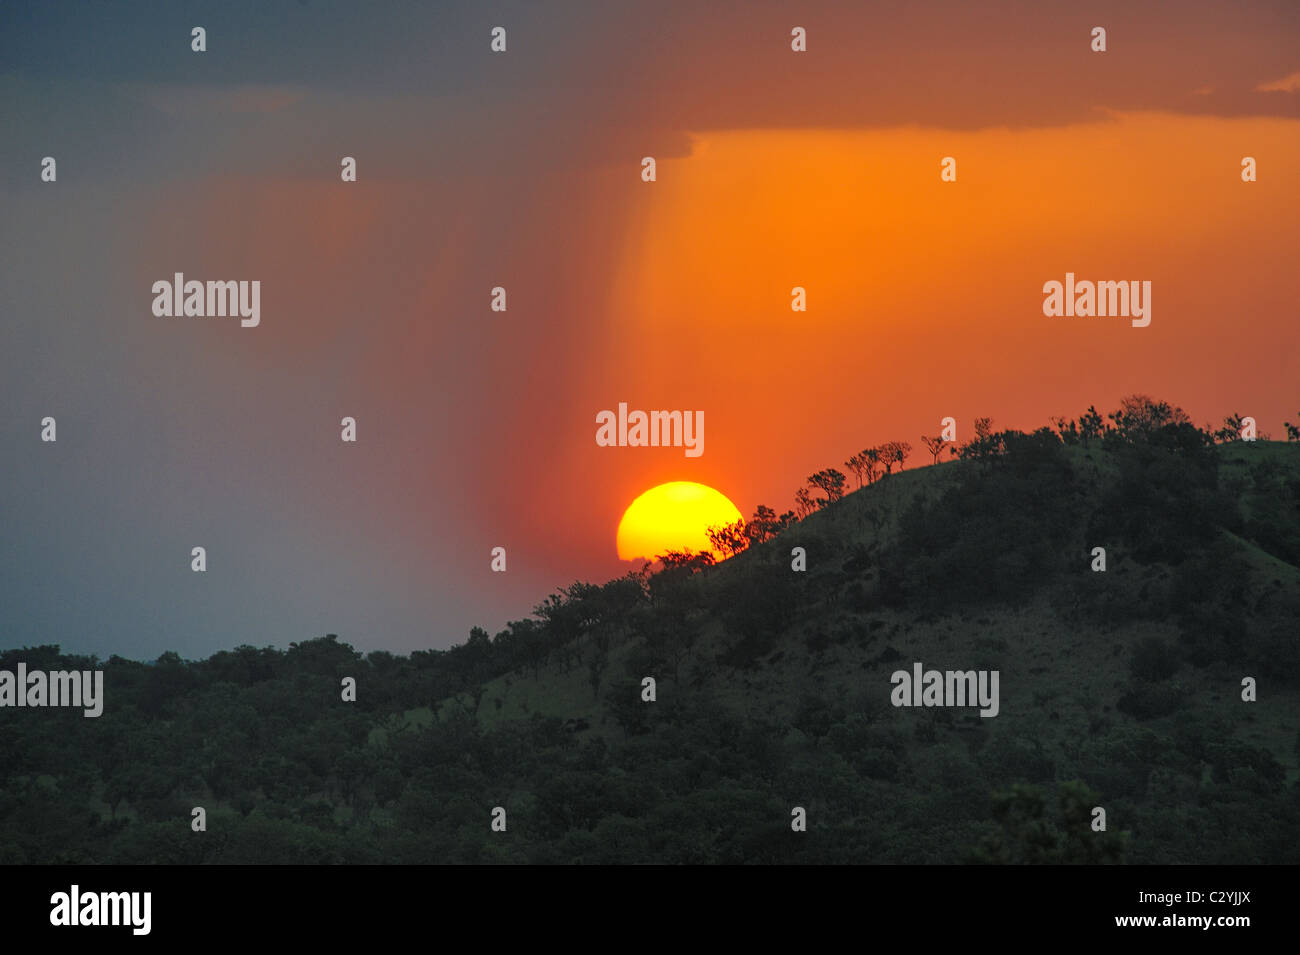 Setting sun over hills of Boma National Park, Sudan - Stock Image